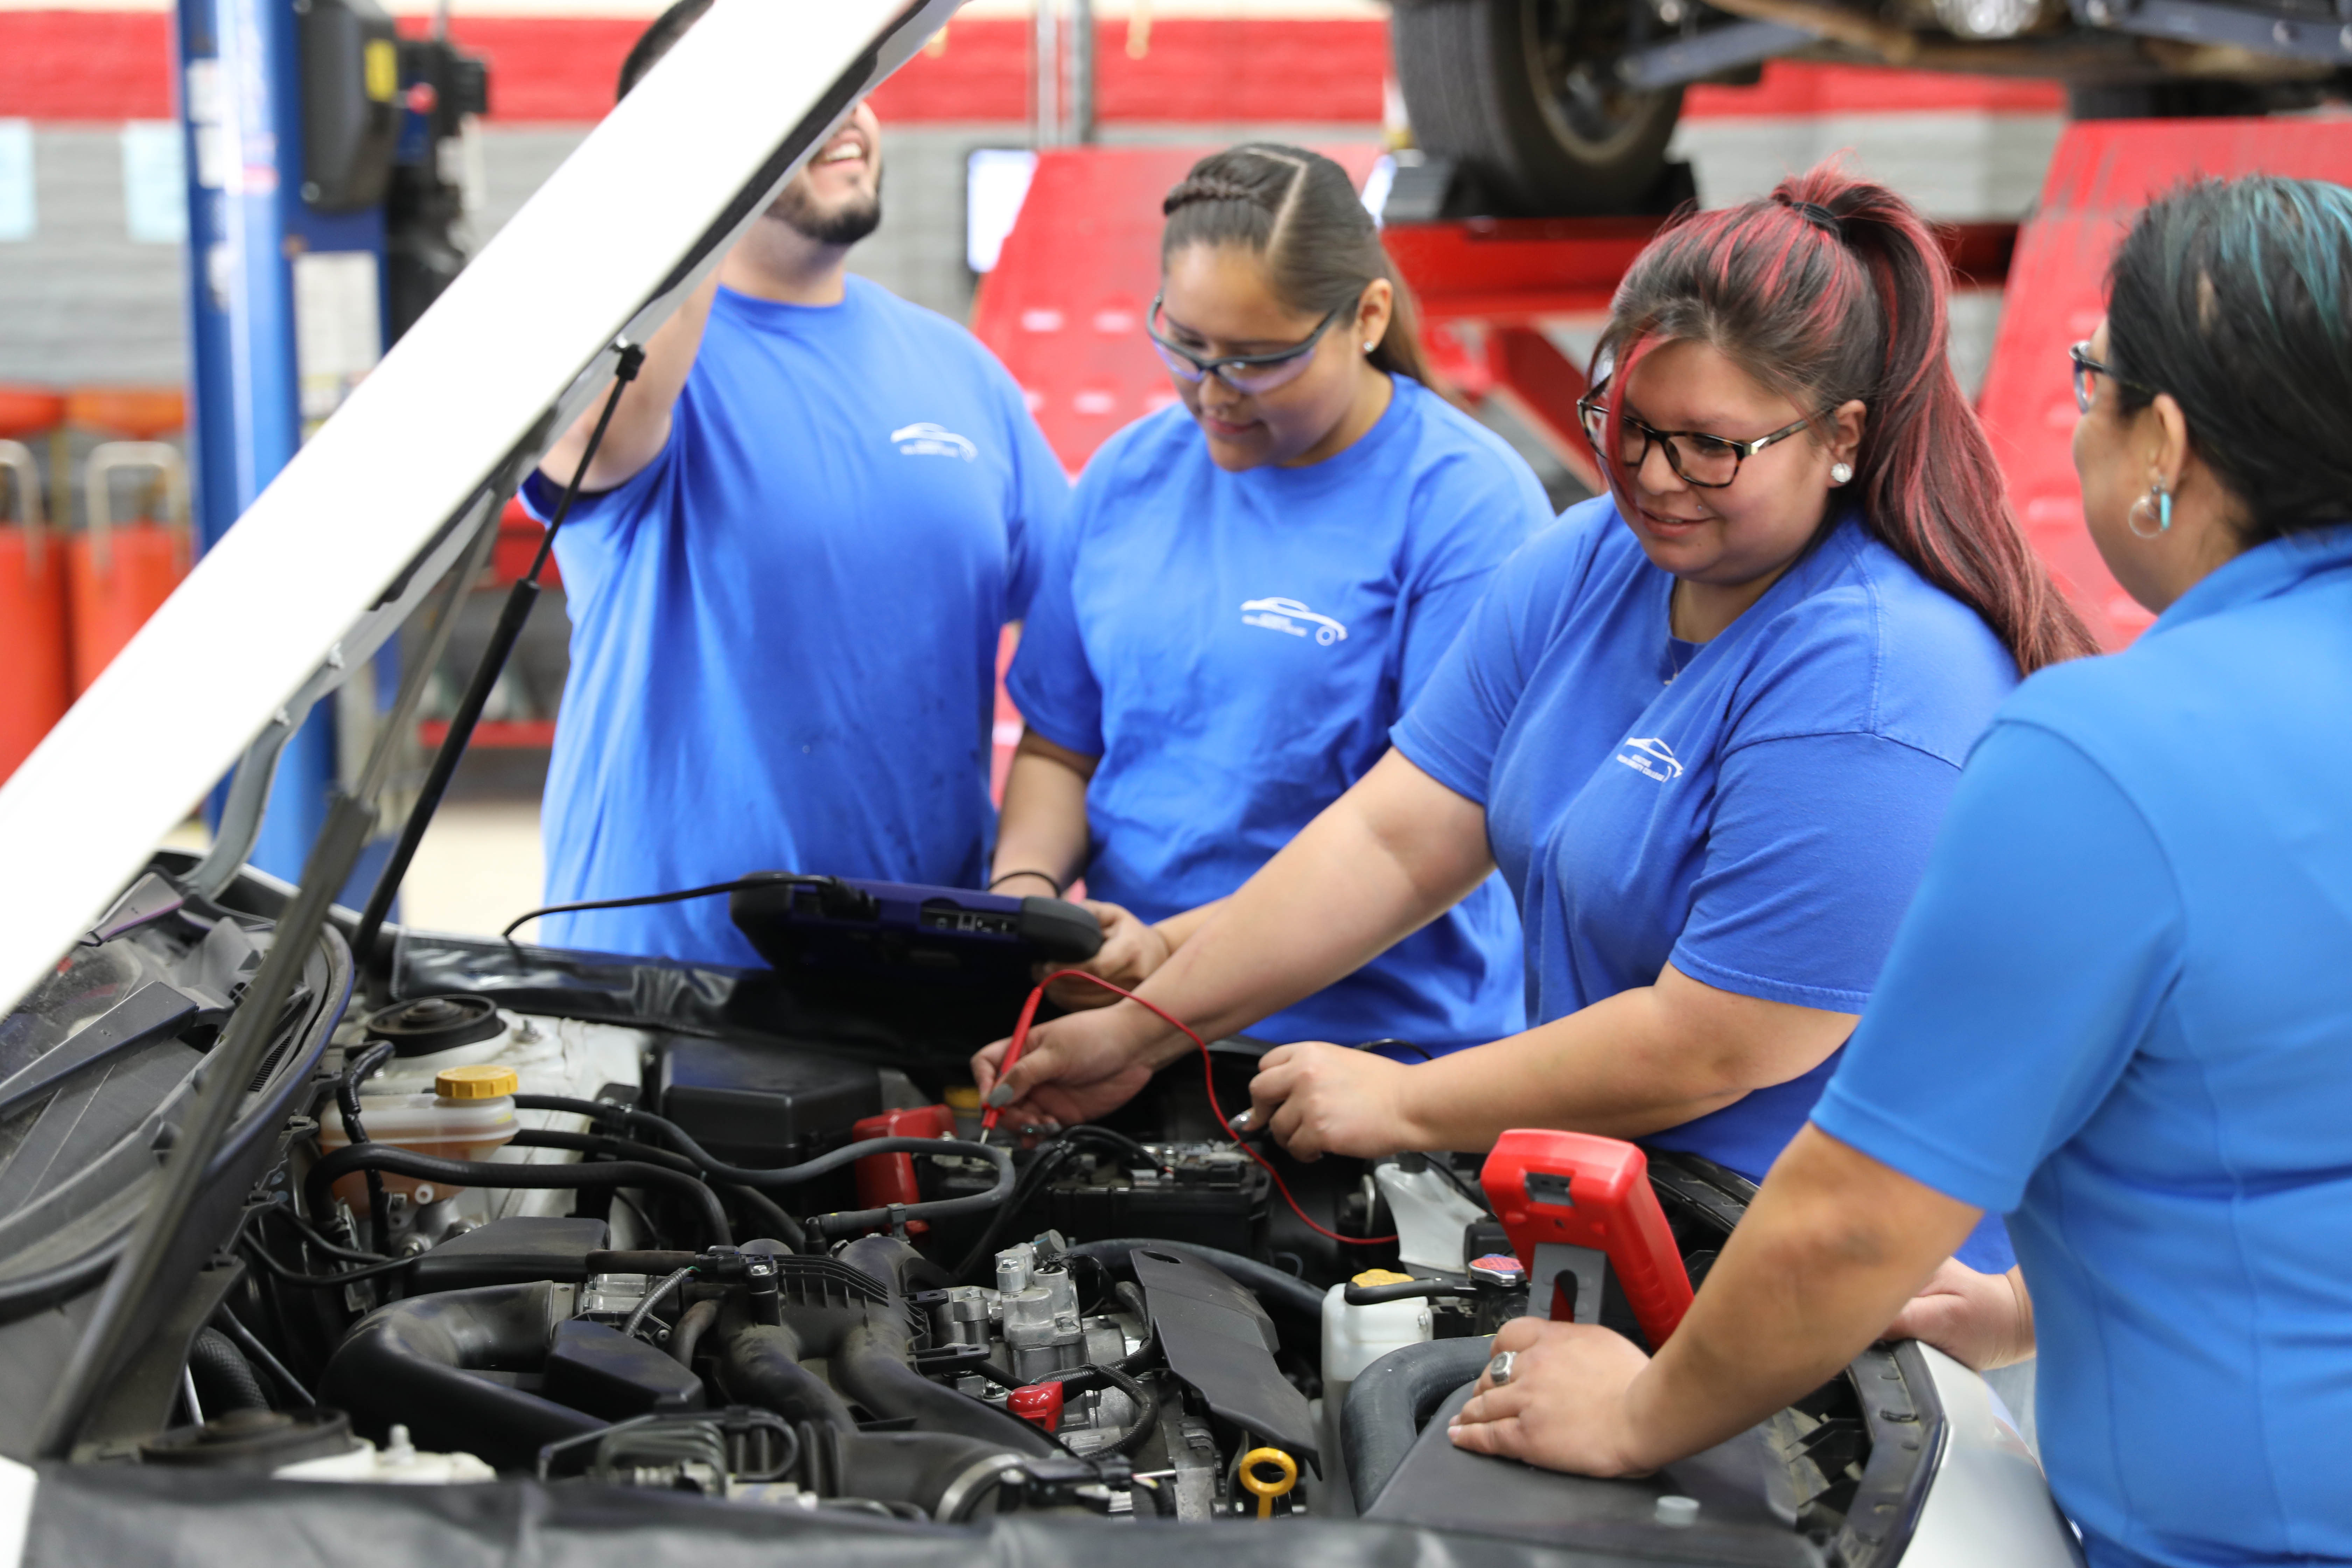 Students using diagnostic tools on Subaru Outback engine